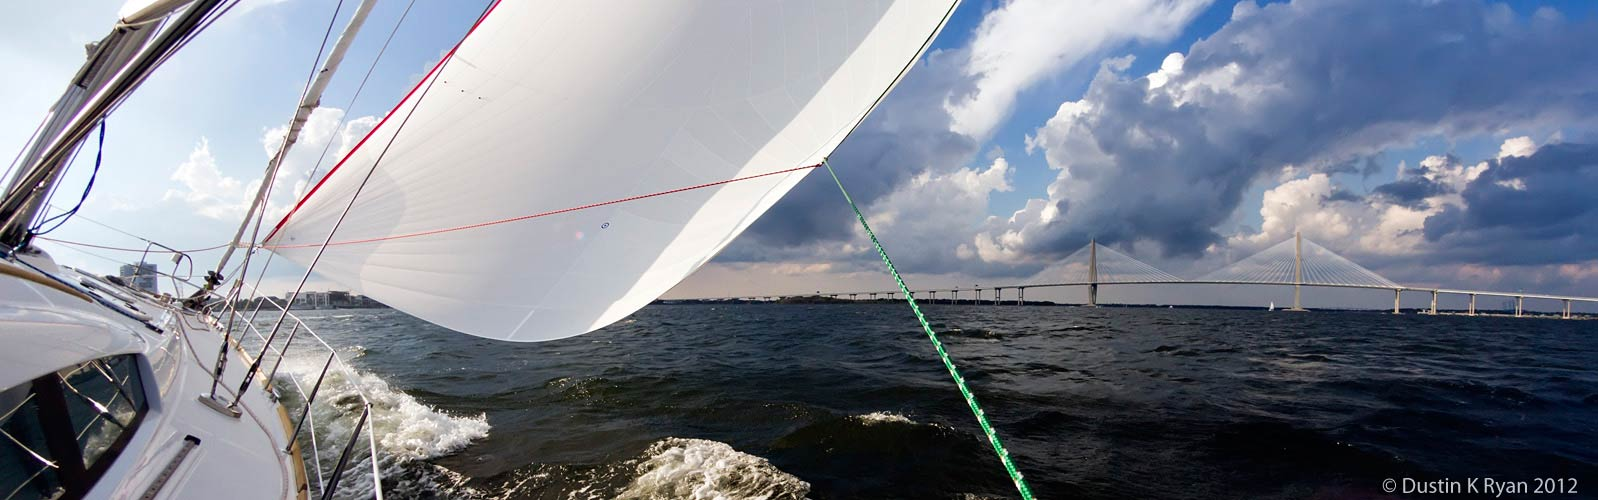 Sail a spinnaker on the Charleston Harbor